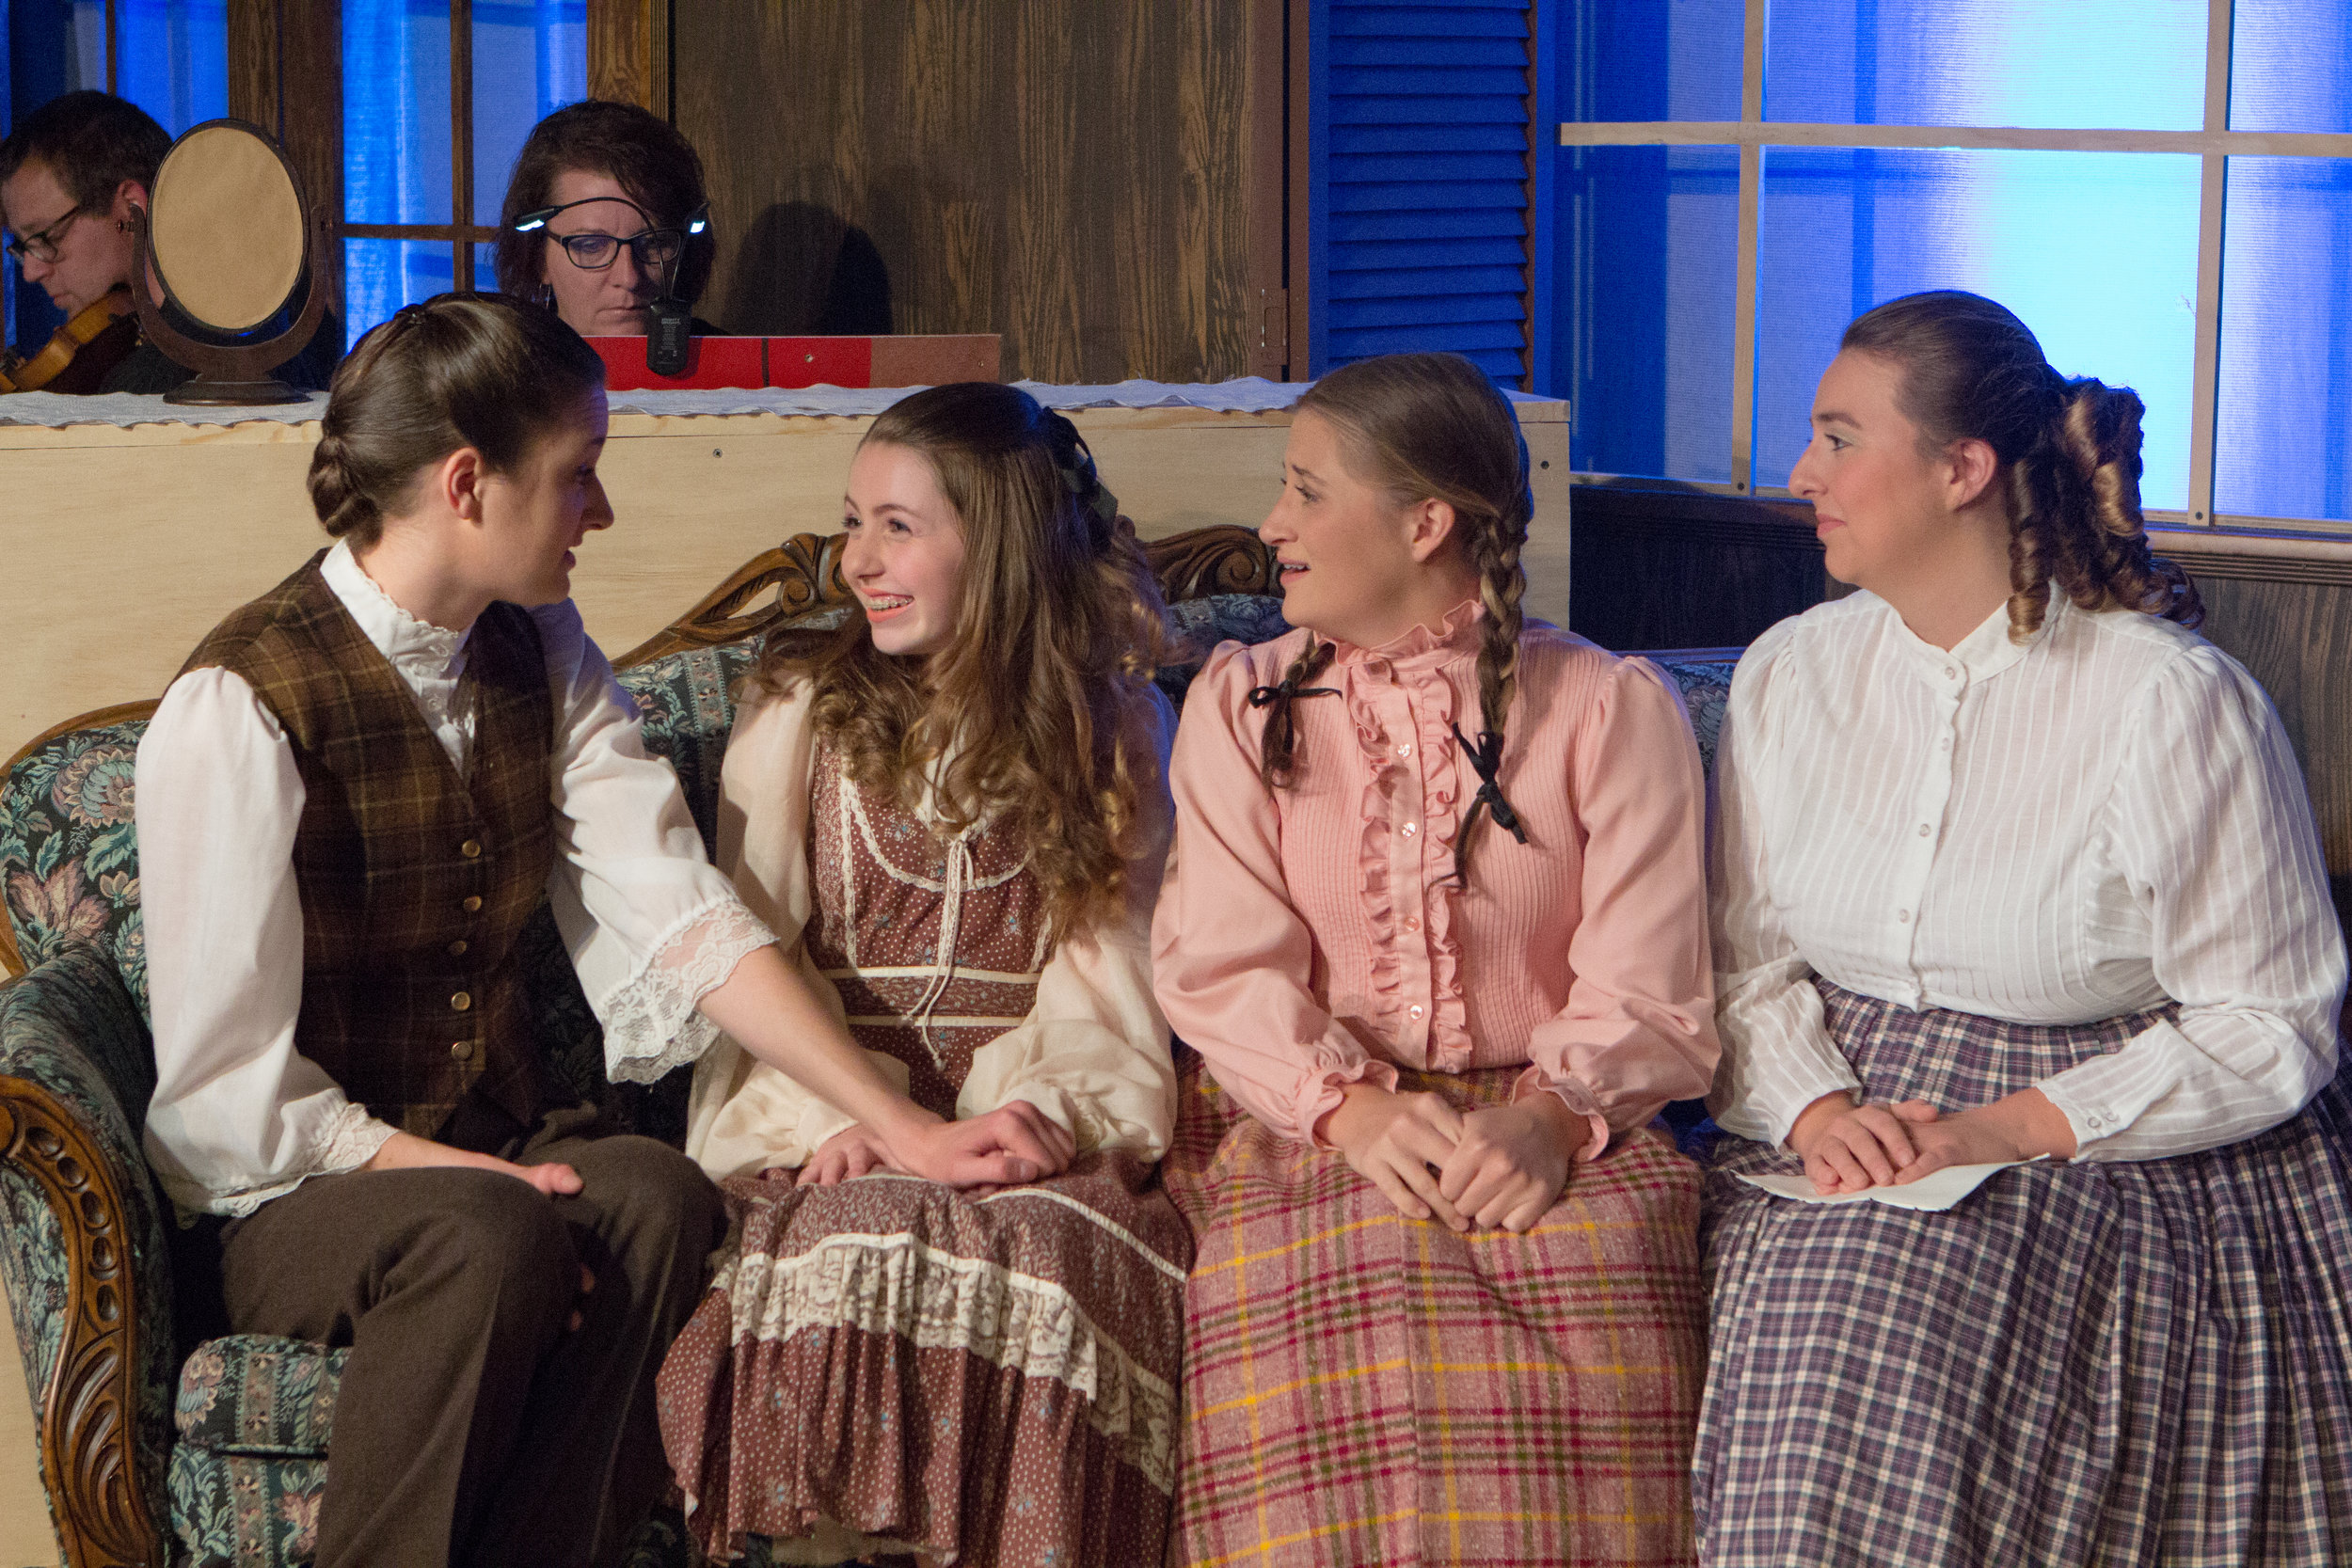 L to R: Kat Geertsen, Ella Rose Kleefisch, Courtney Denzer, and Hannah Esch in 'LITTLE WOMEN' at Lake Country Playhouse. Photo credit: James Baker